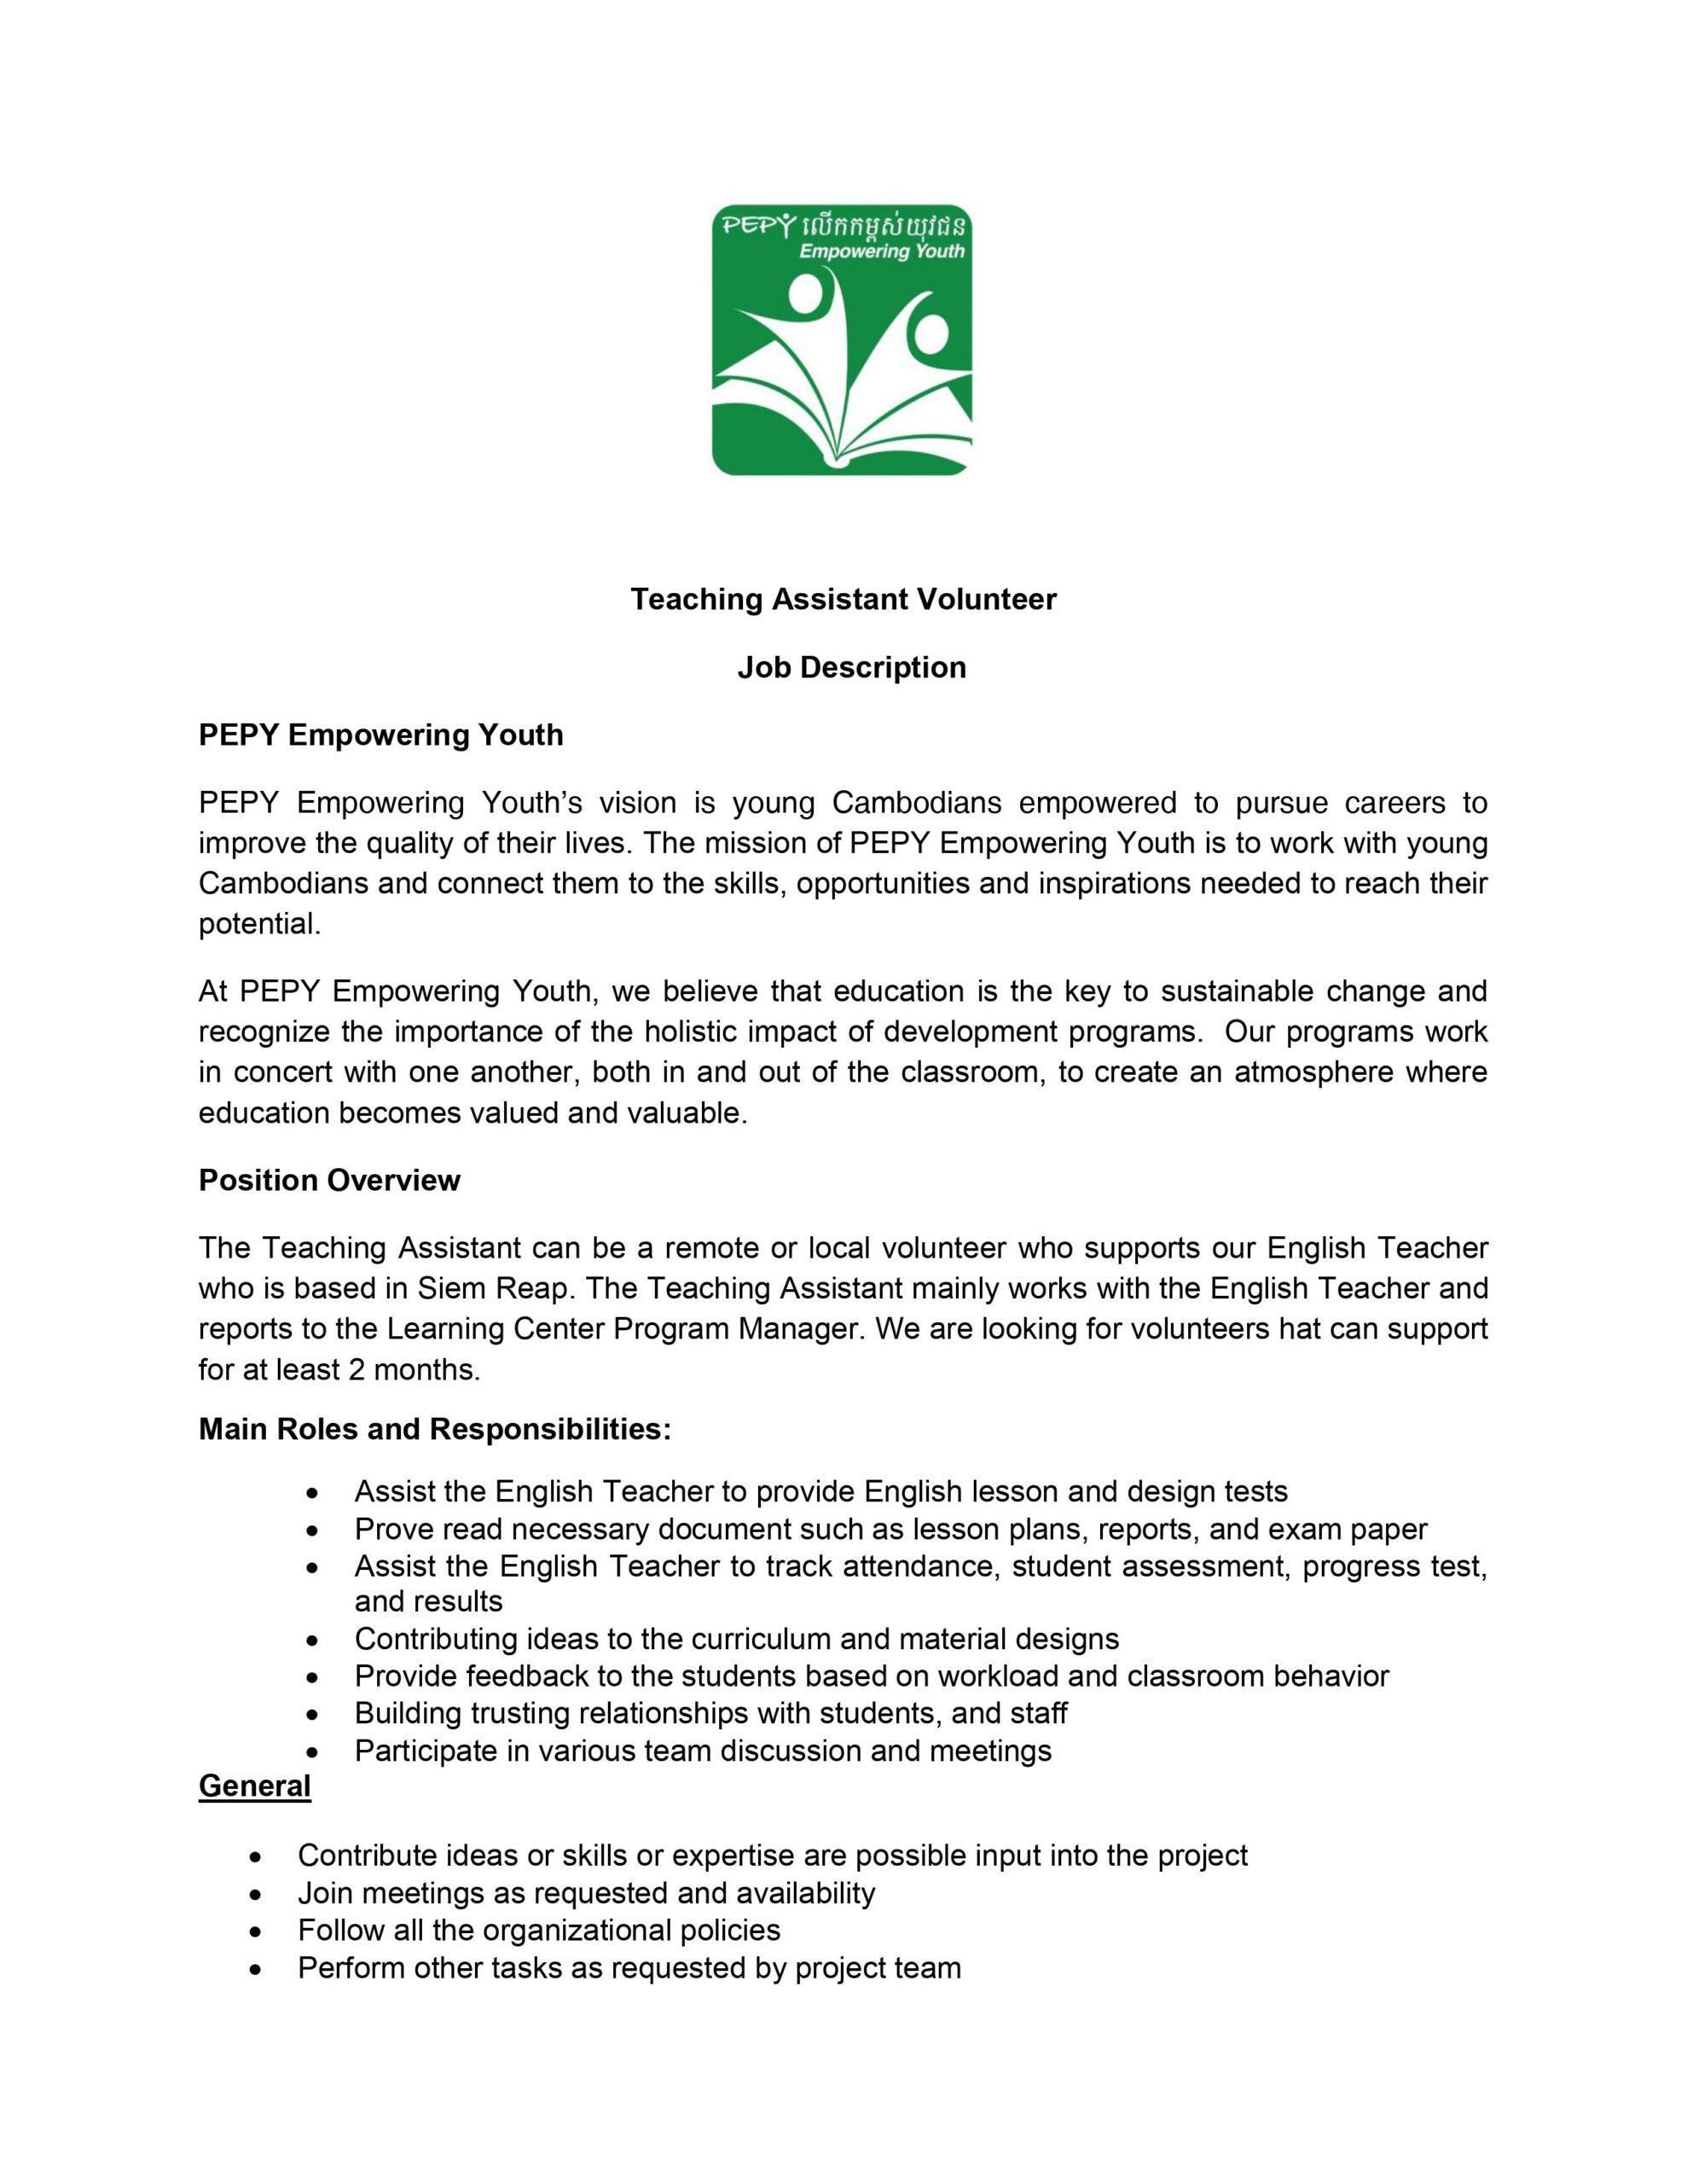 Monitoring and Evaluation Officer Job Description